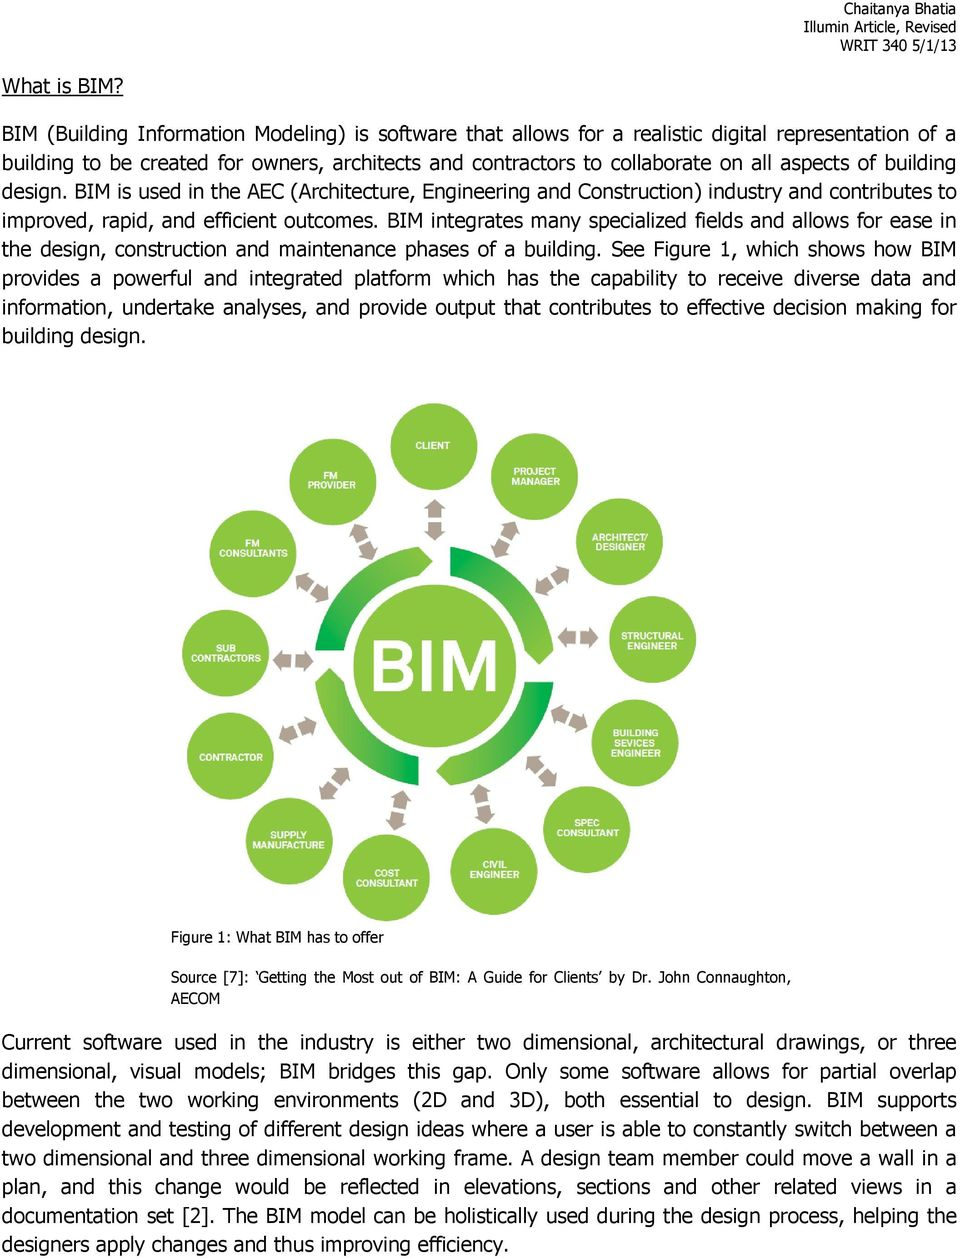 building design. BIM is used in the AEC (Architecture, Engineering and Construction) industry and contributes to improved, rapid, and efficient outcomes.